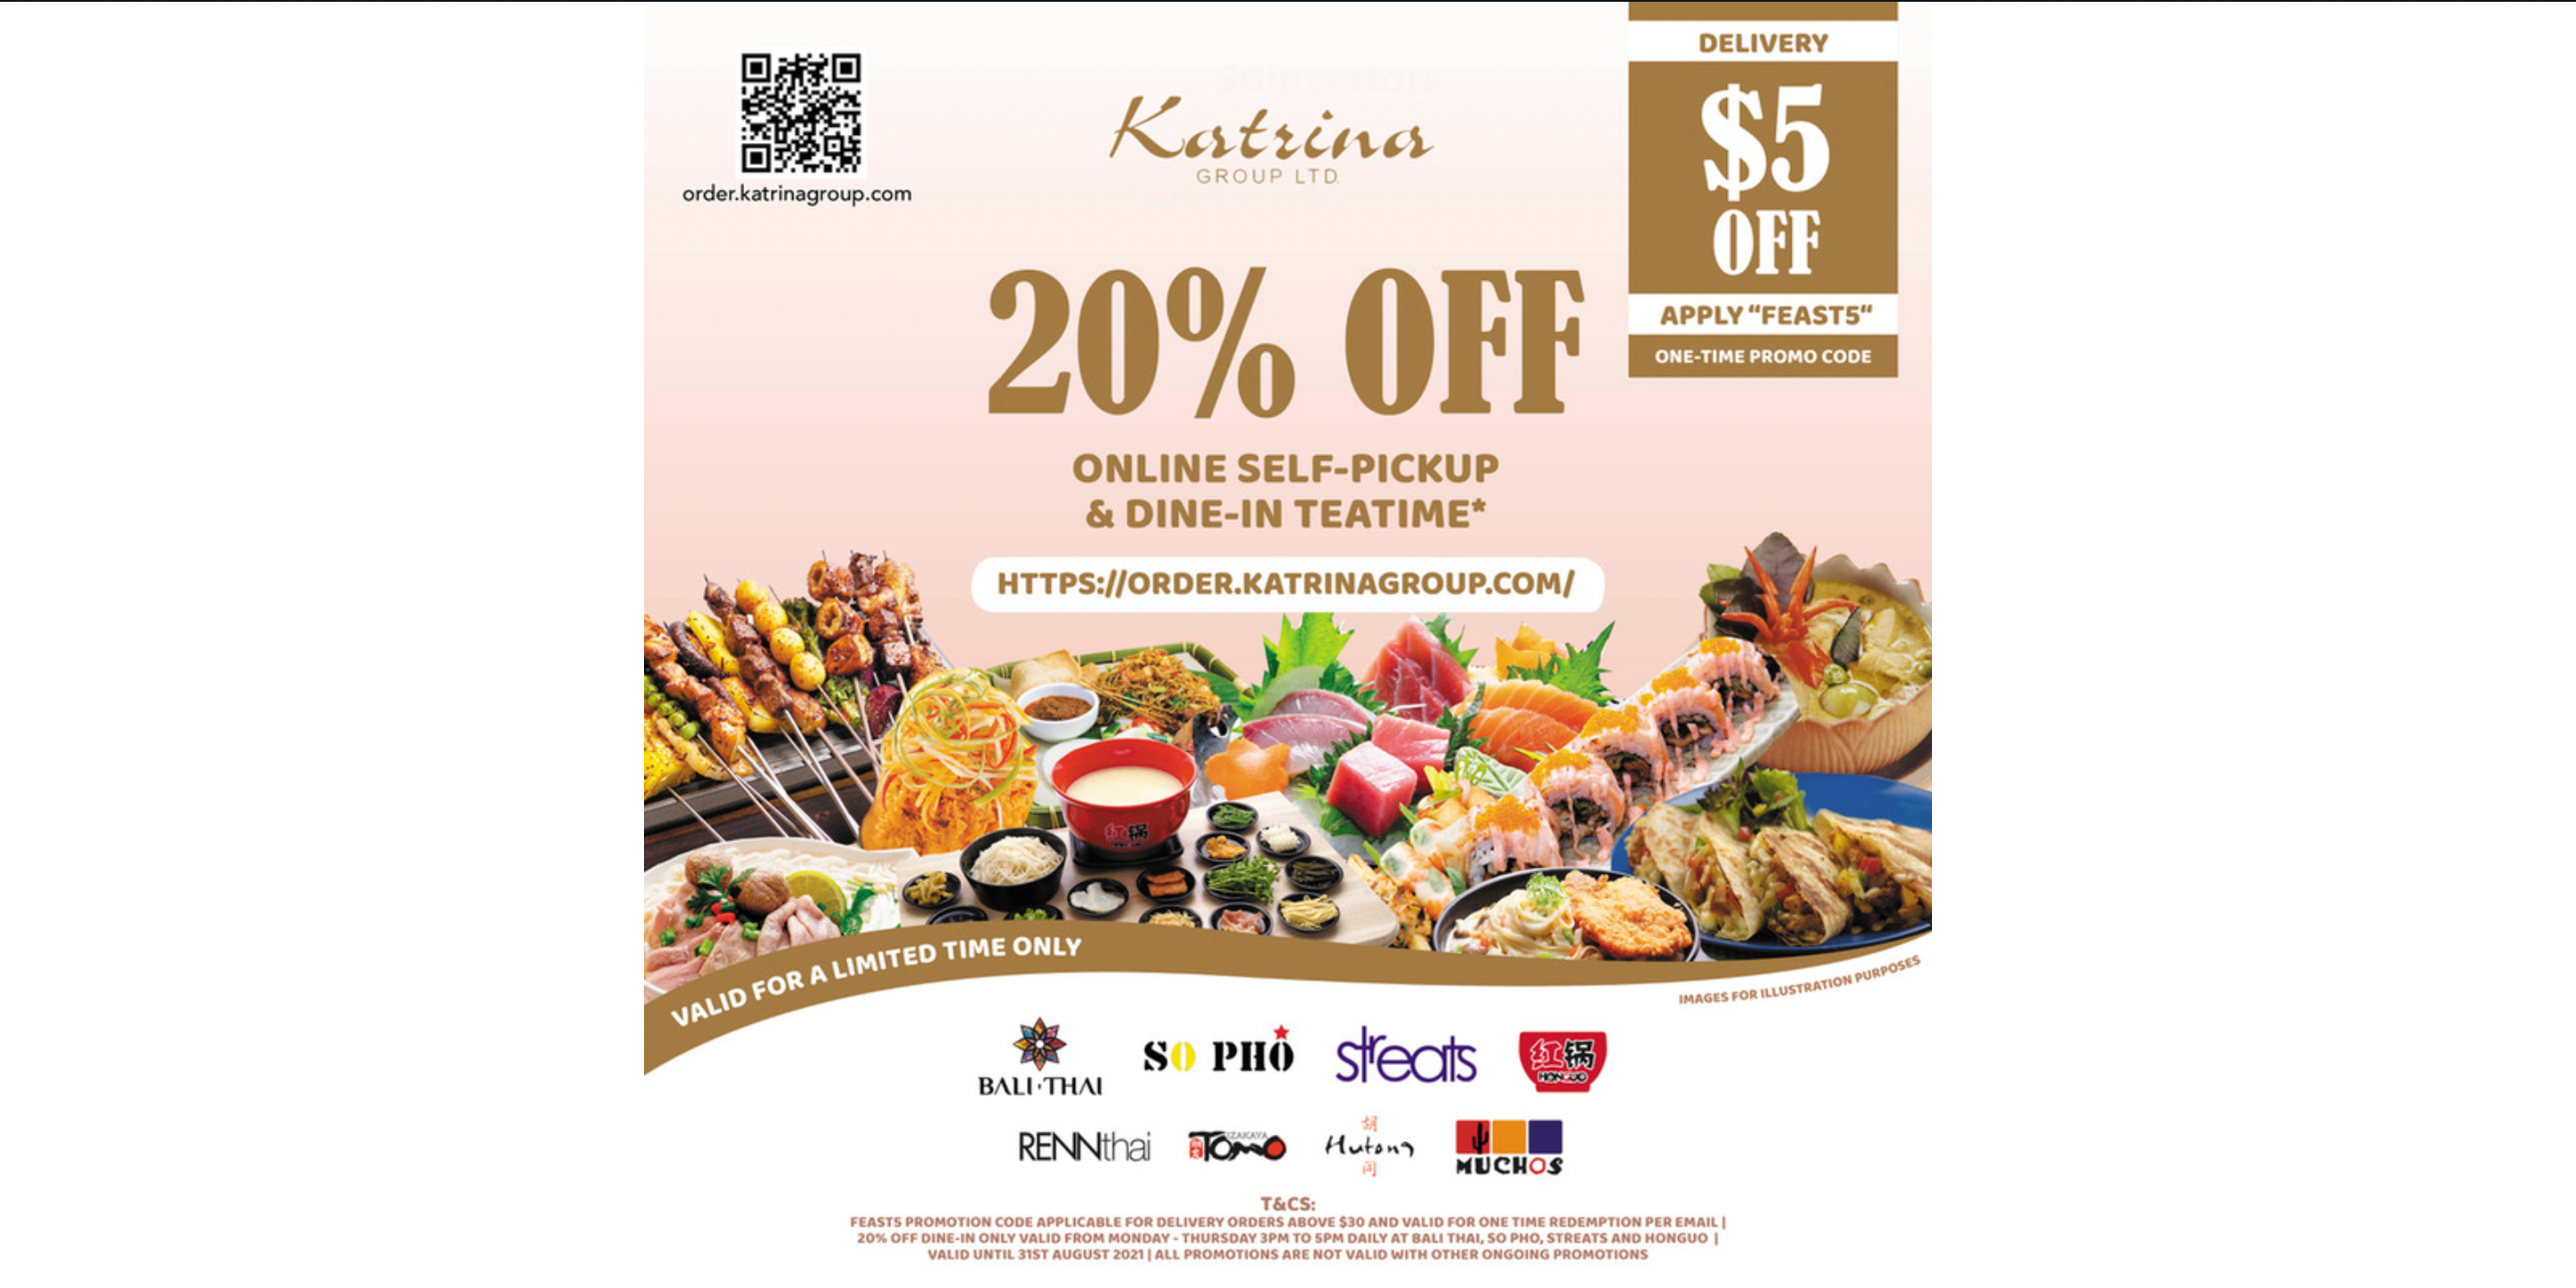 Order from these 8 restaurants and enjoy 20% OFF Self-pickup, dine-in and $5 OFF Deliver